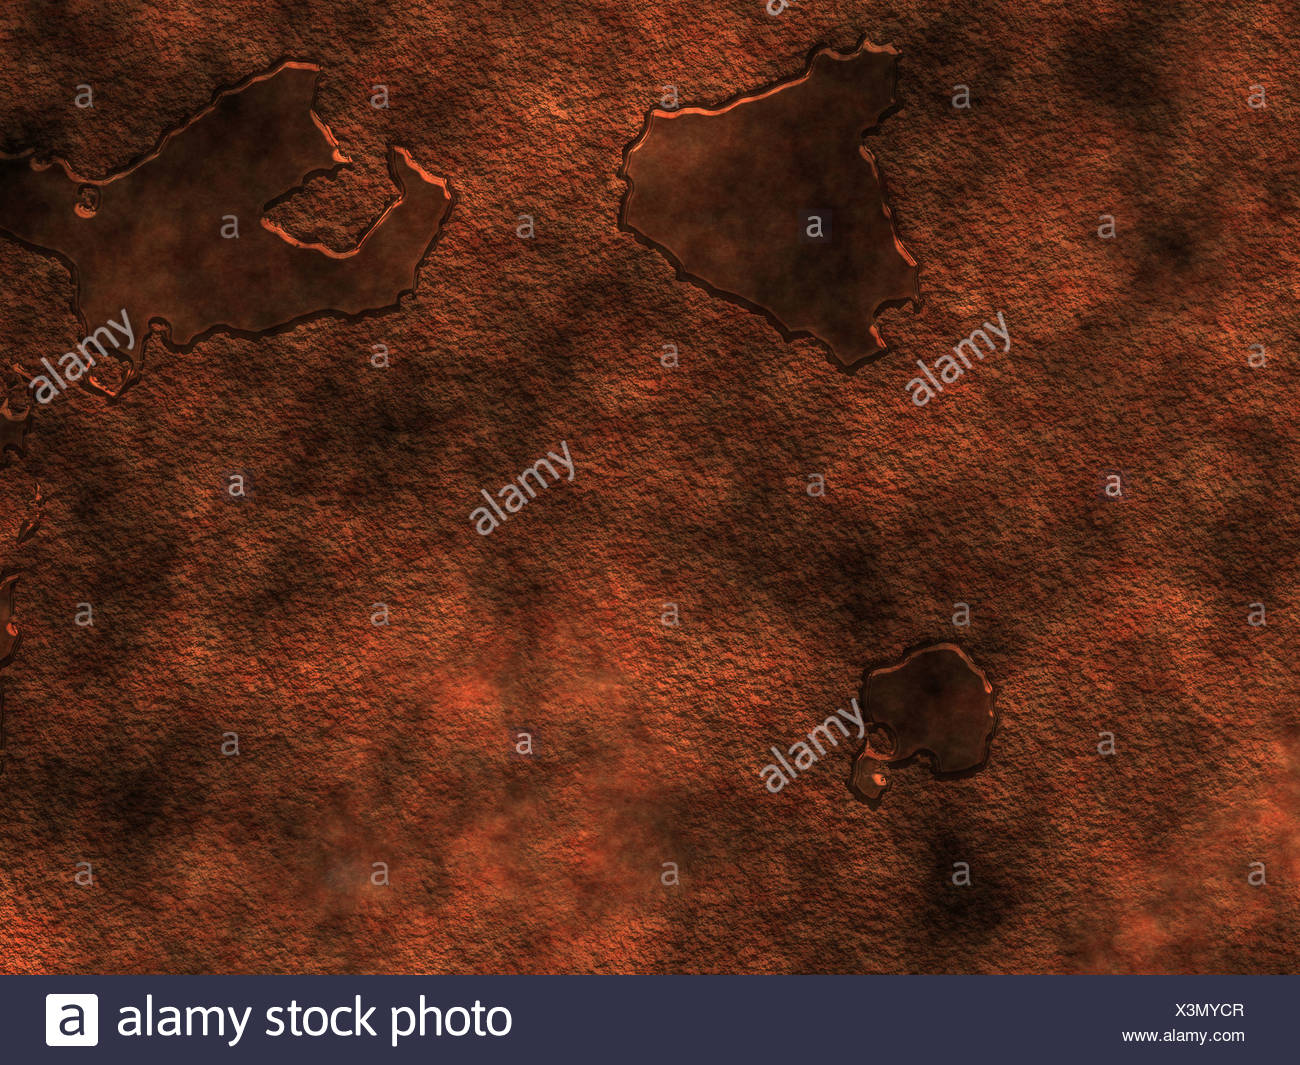 Rust metal - Stock Image